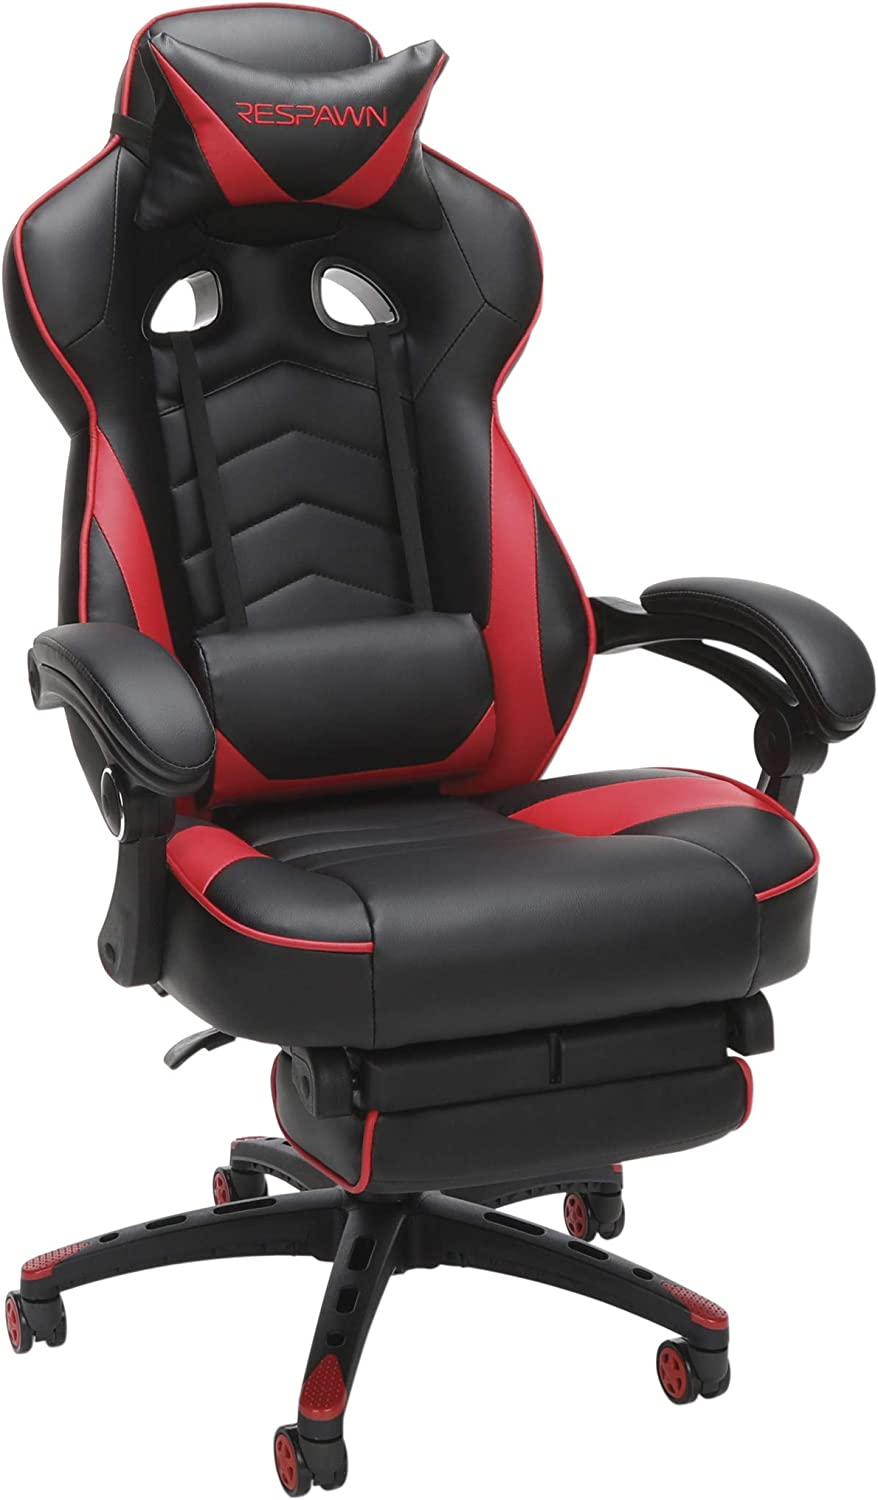 RESPAWN Racing Style Gaming & Office Chair